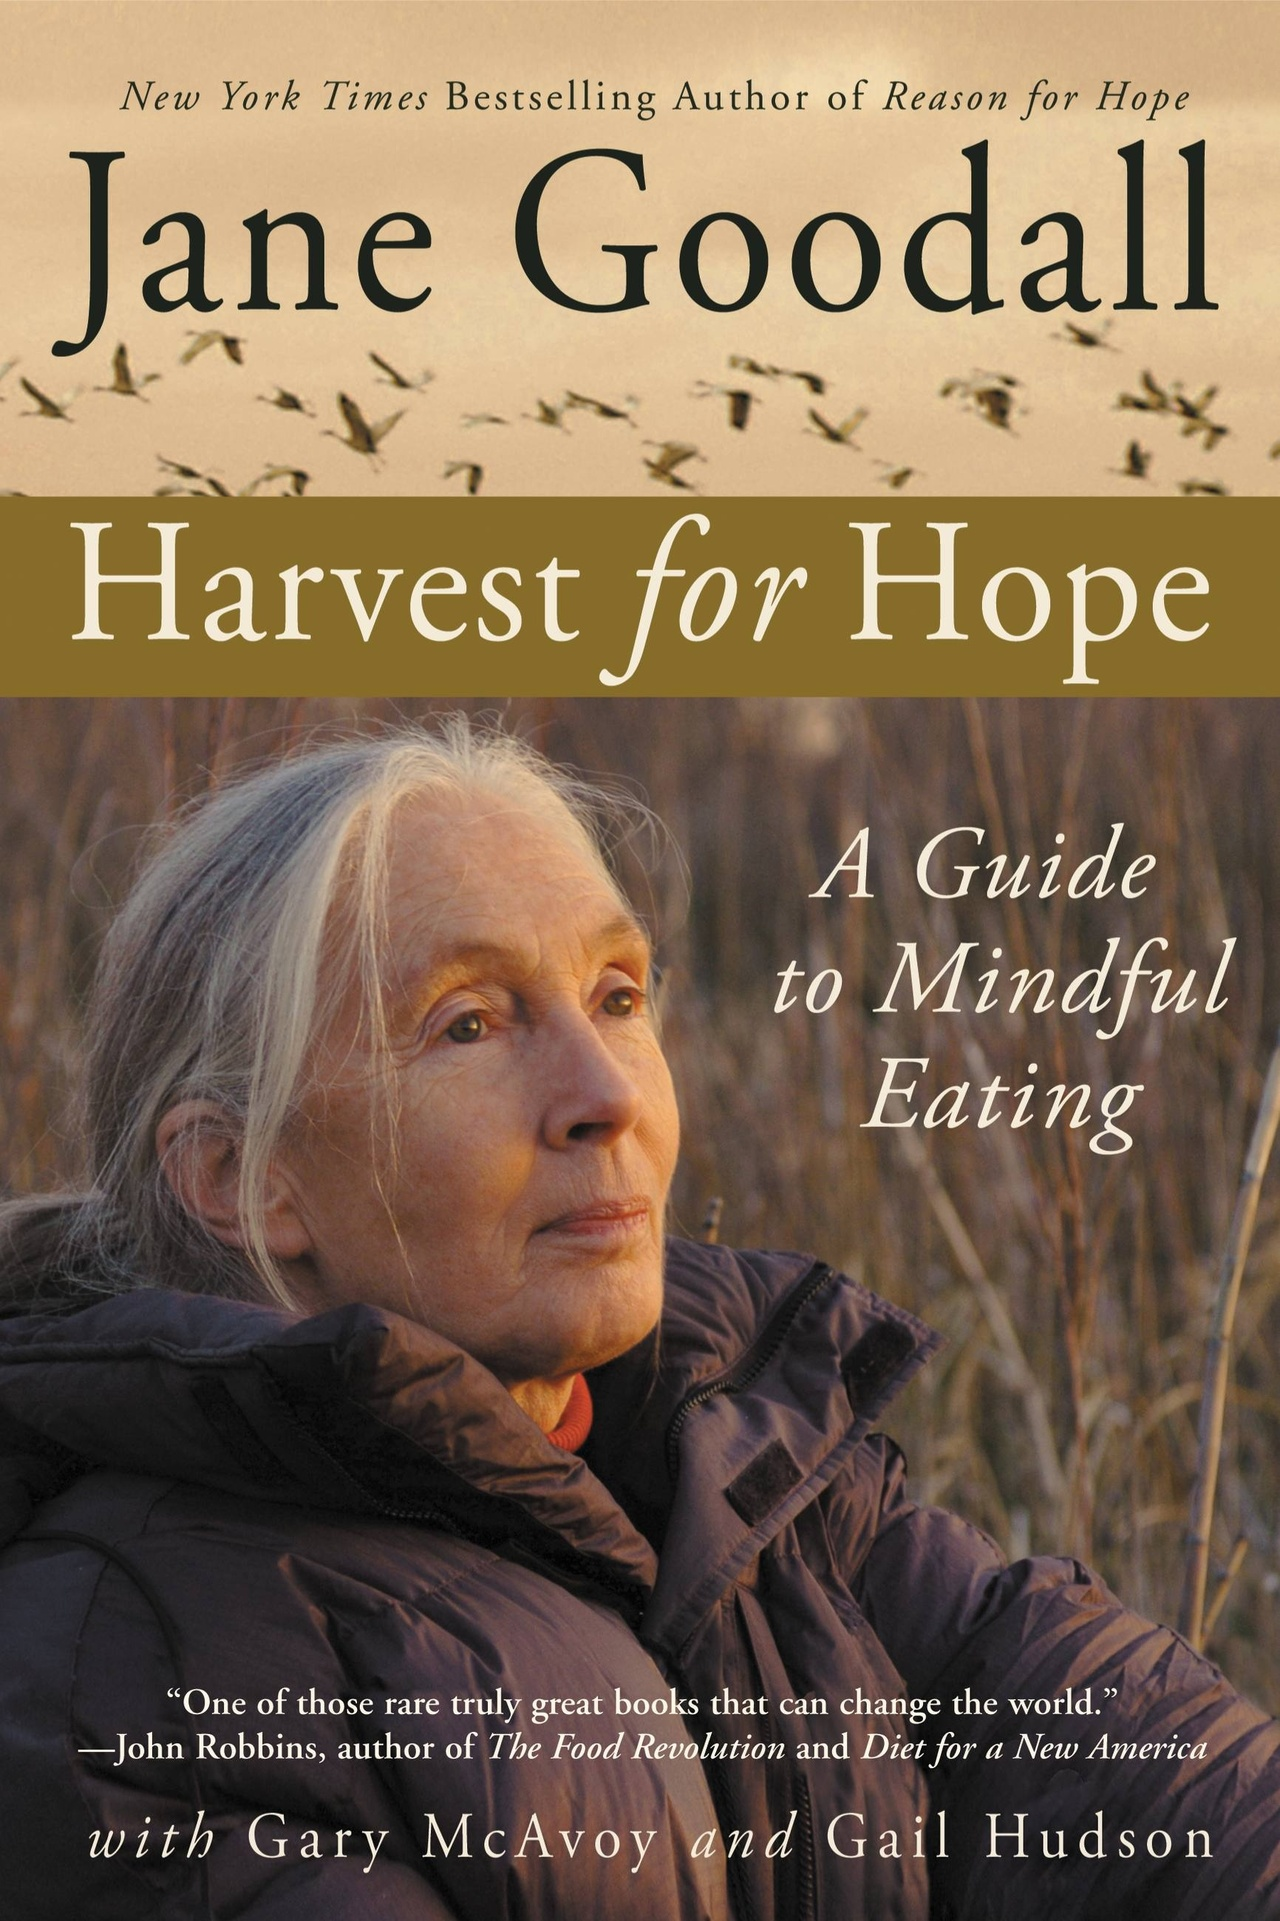 Harvest for hope cover